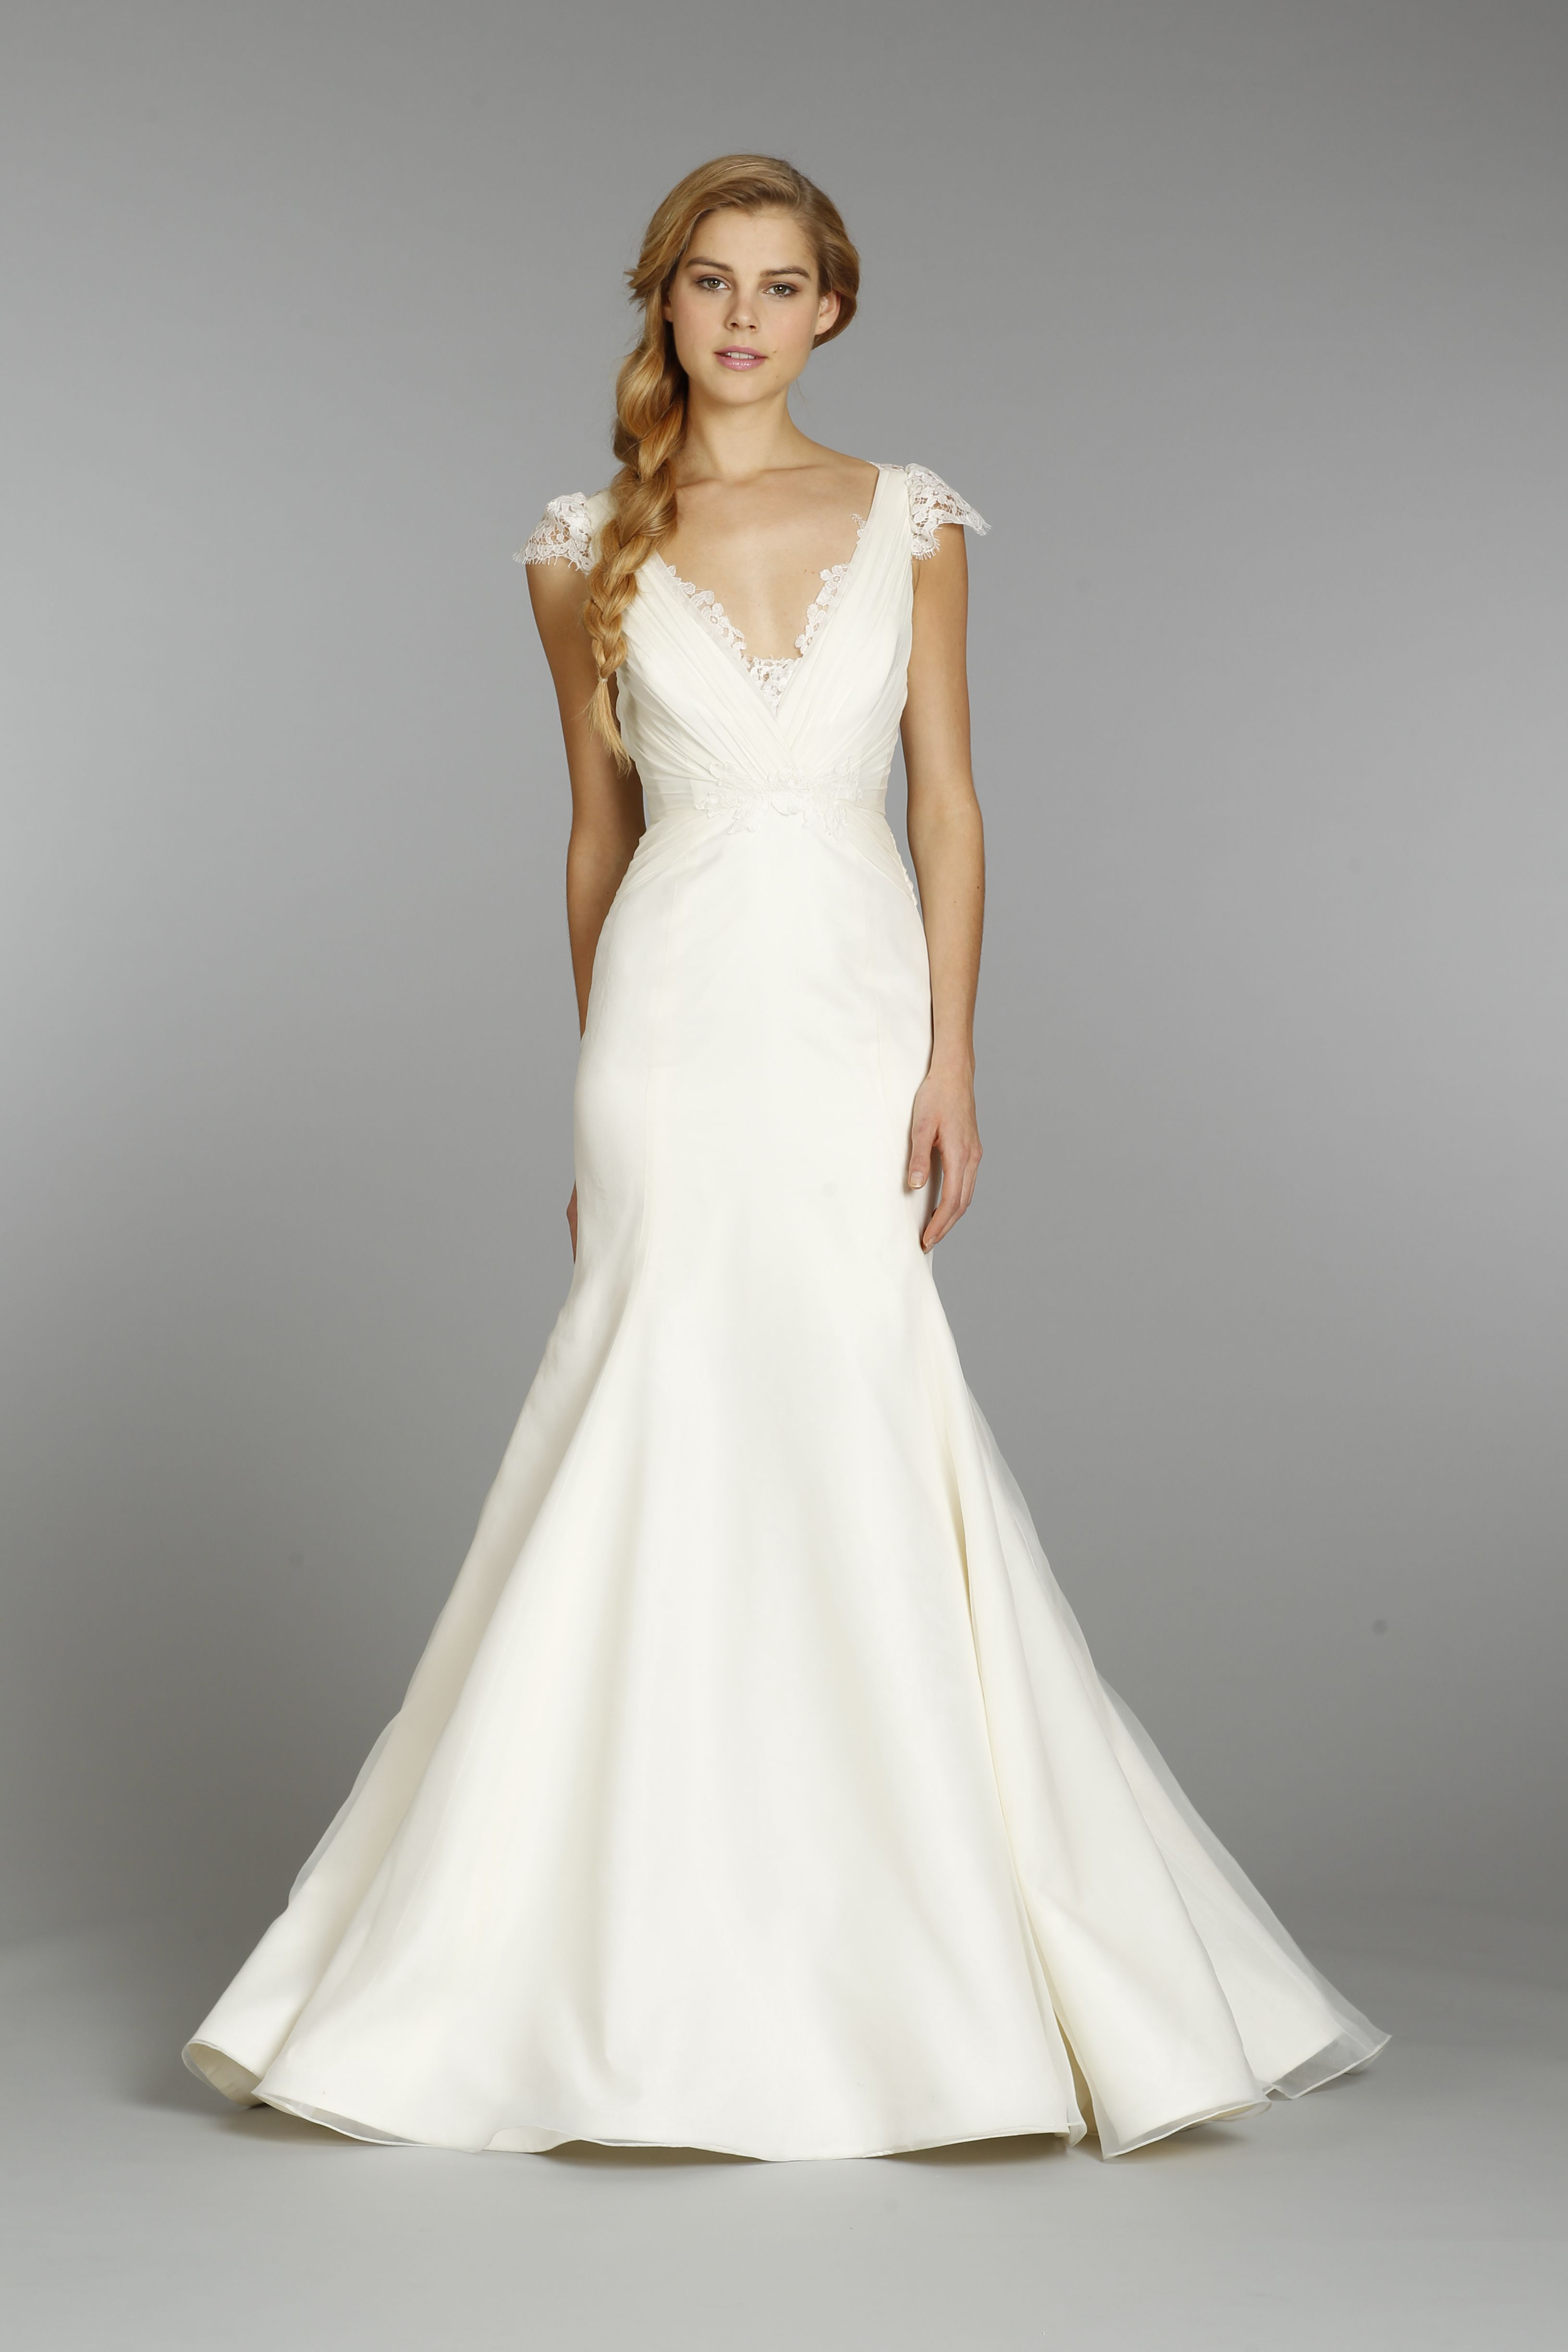 Wedding Wisdom Top Tips On Finding The Most Flattering Dress By Paperswan Bride